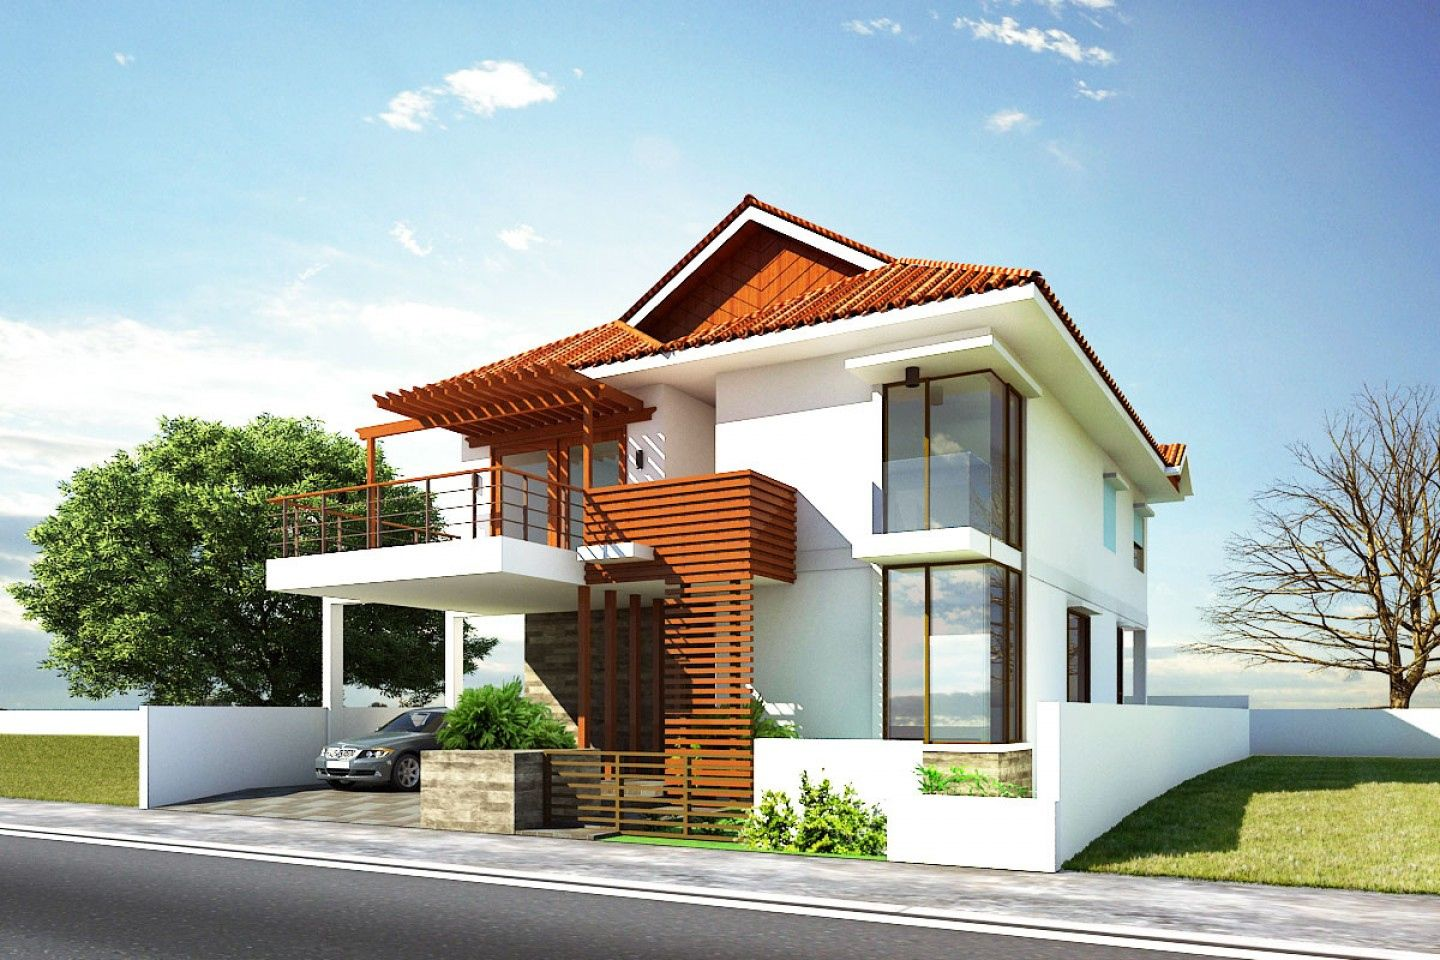 Unique World Best House Design Check more at http://www.jnnsysy.com ...